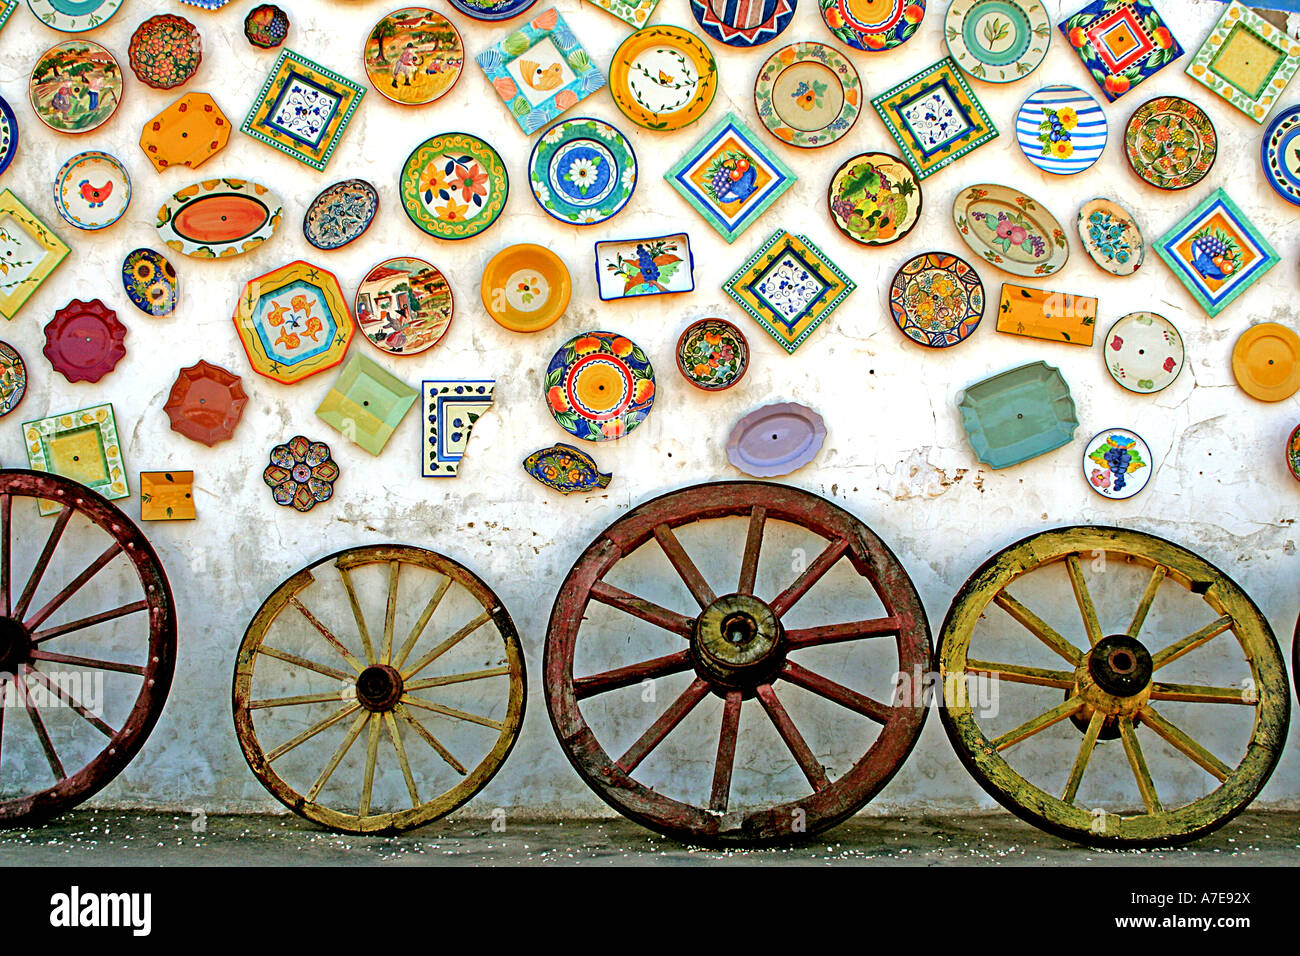 Pottery display and wagon wheels outside shop Raposeira Algarve Portugal Europe - Stock Image